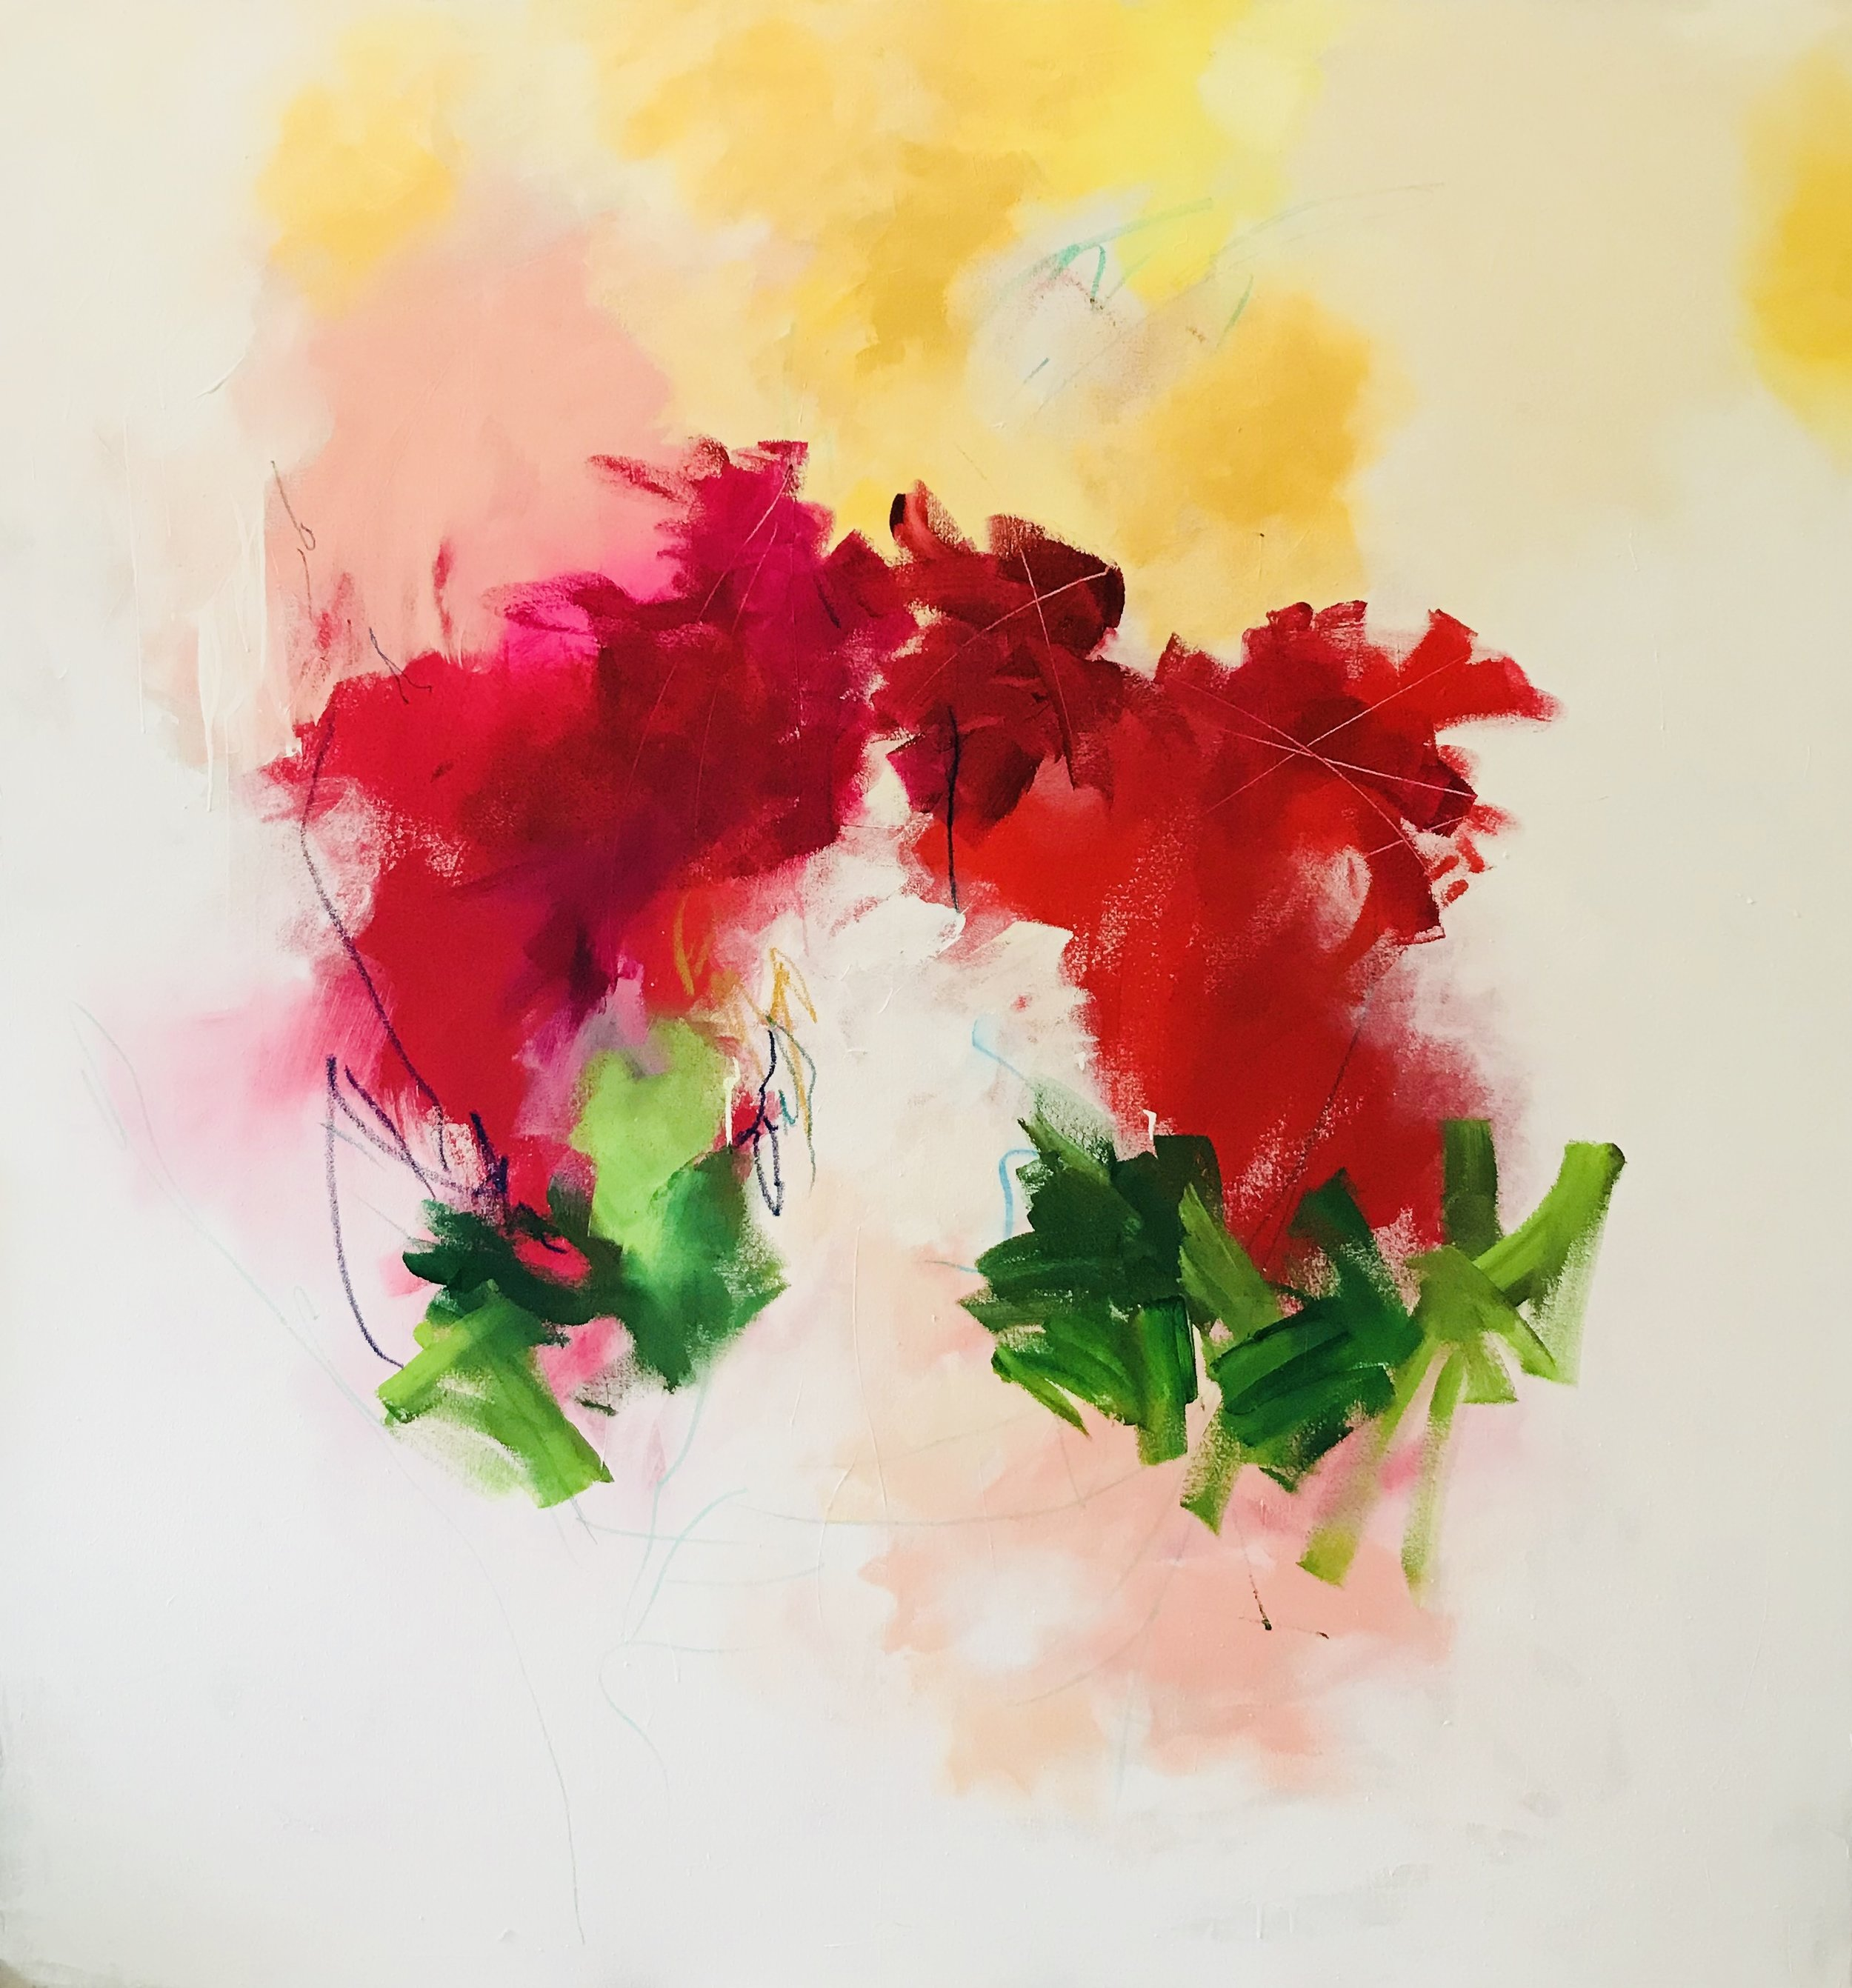 Ginger Cochran,  Innocent,  2018, 60 x 60 in., mixed media.